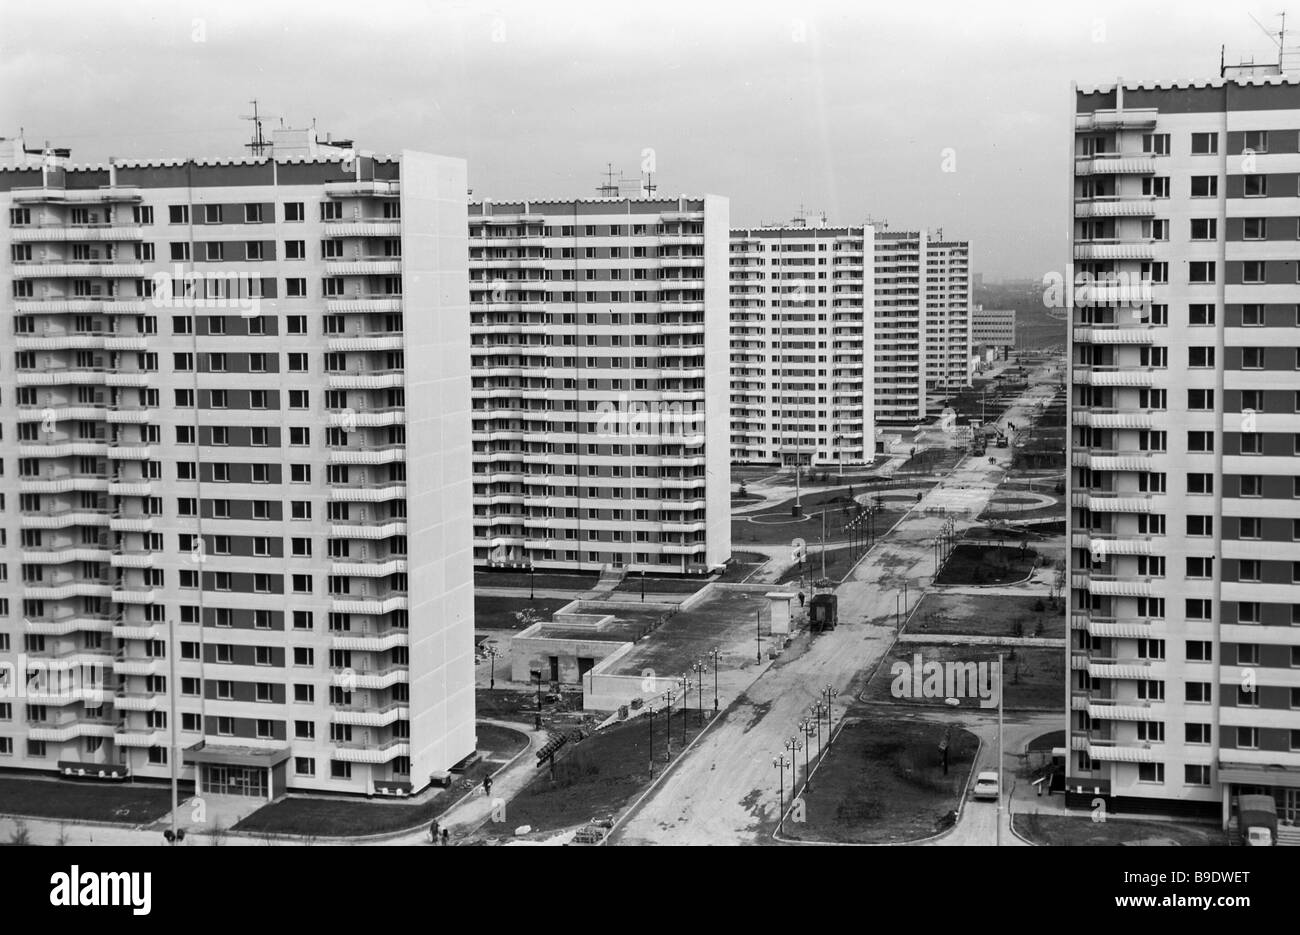 The Olympic Village on Michurinsky Prospekt in Moscow Stock Photo